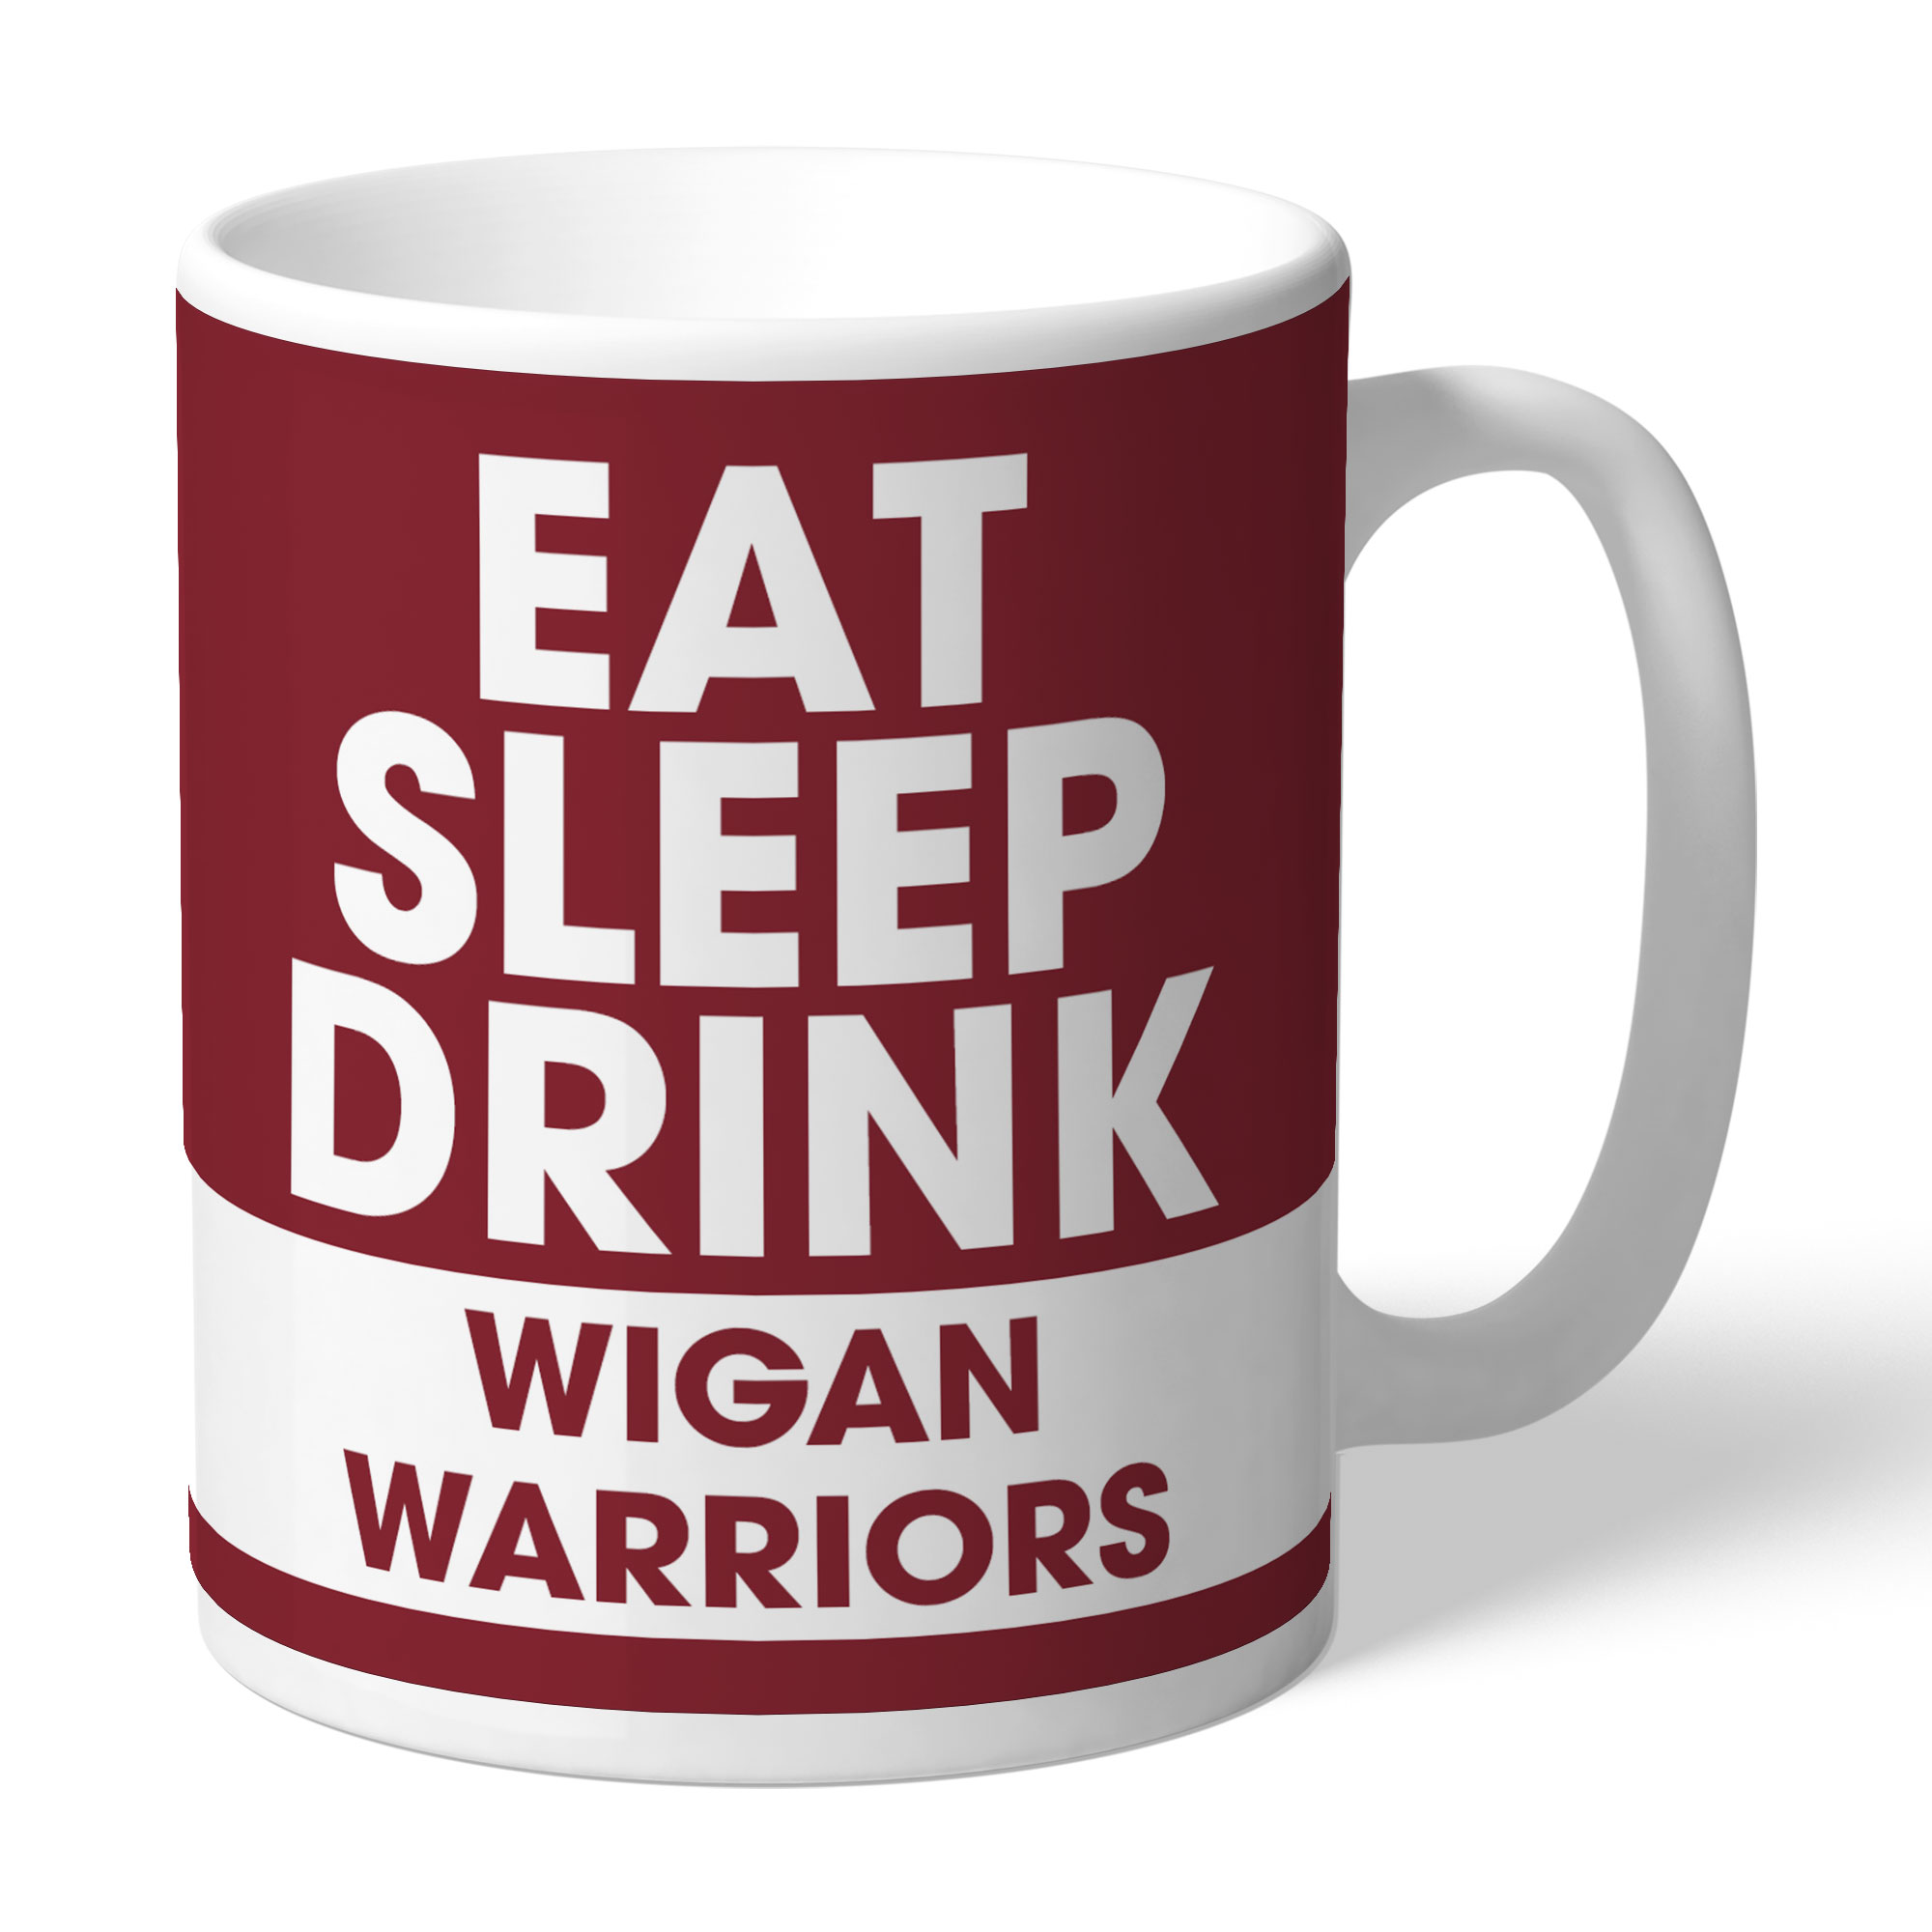 Wigan Warriors Eat Sleep Drink Mug